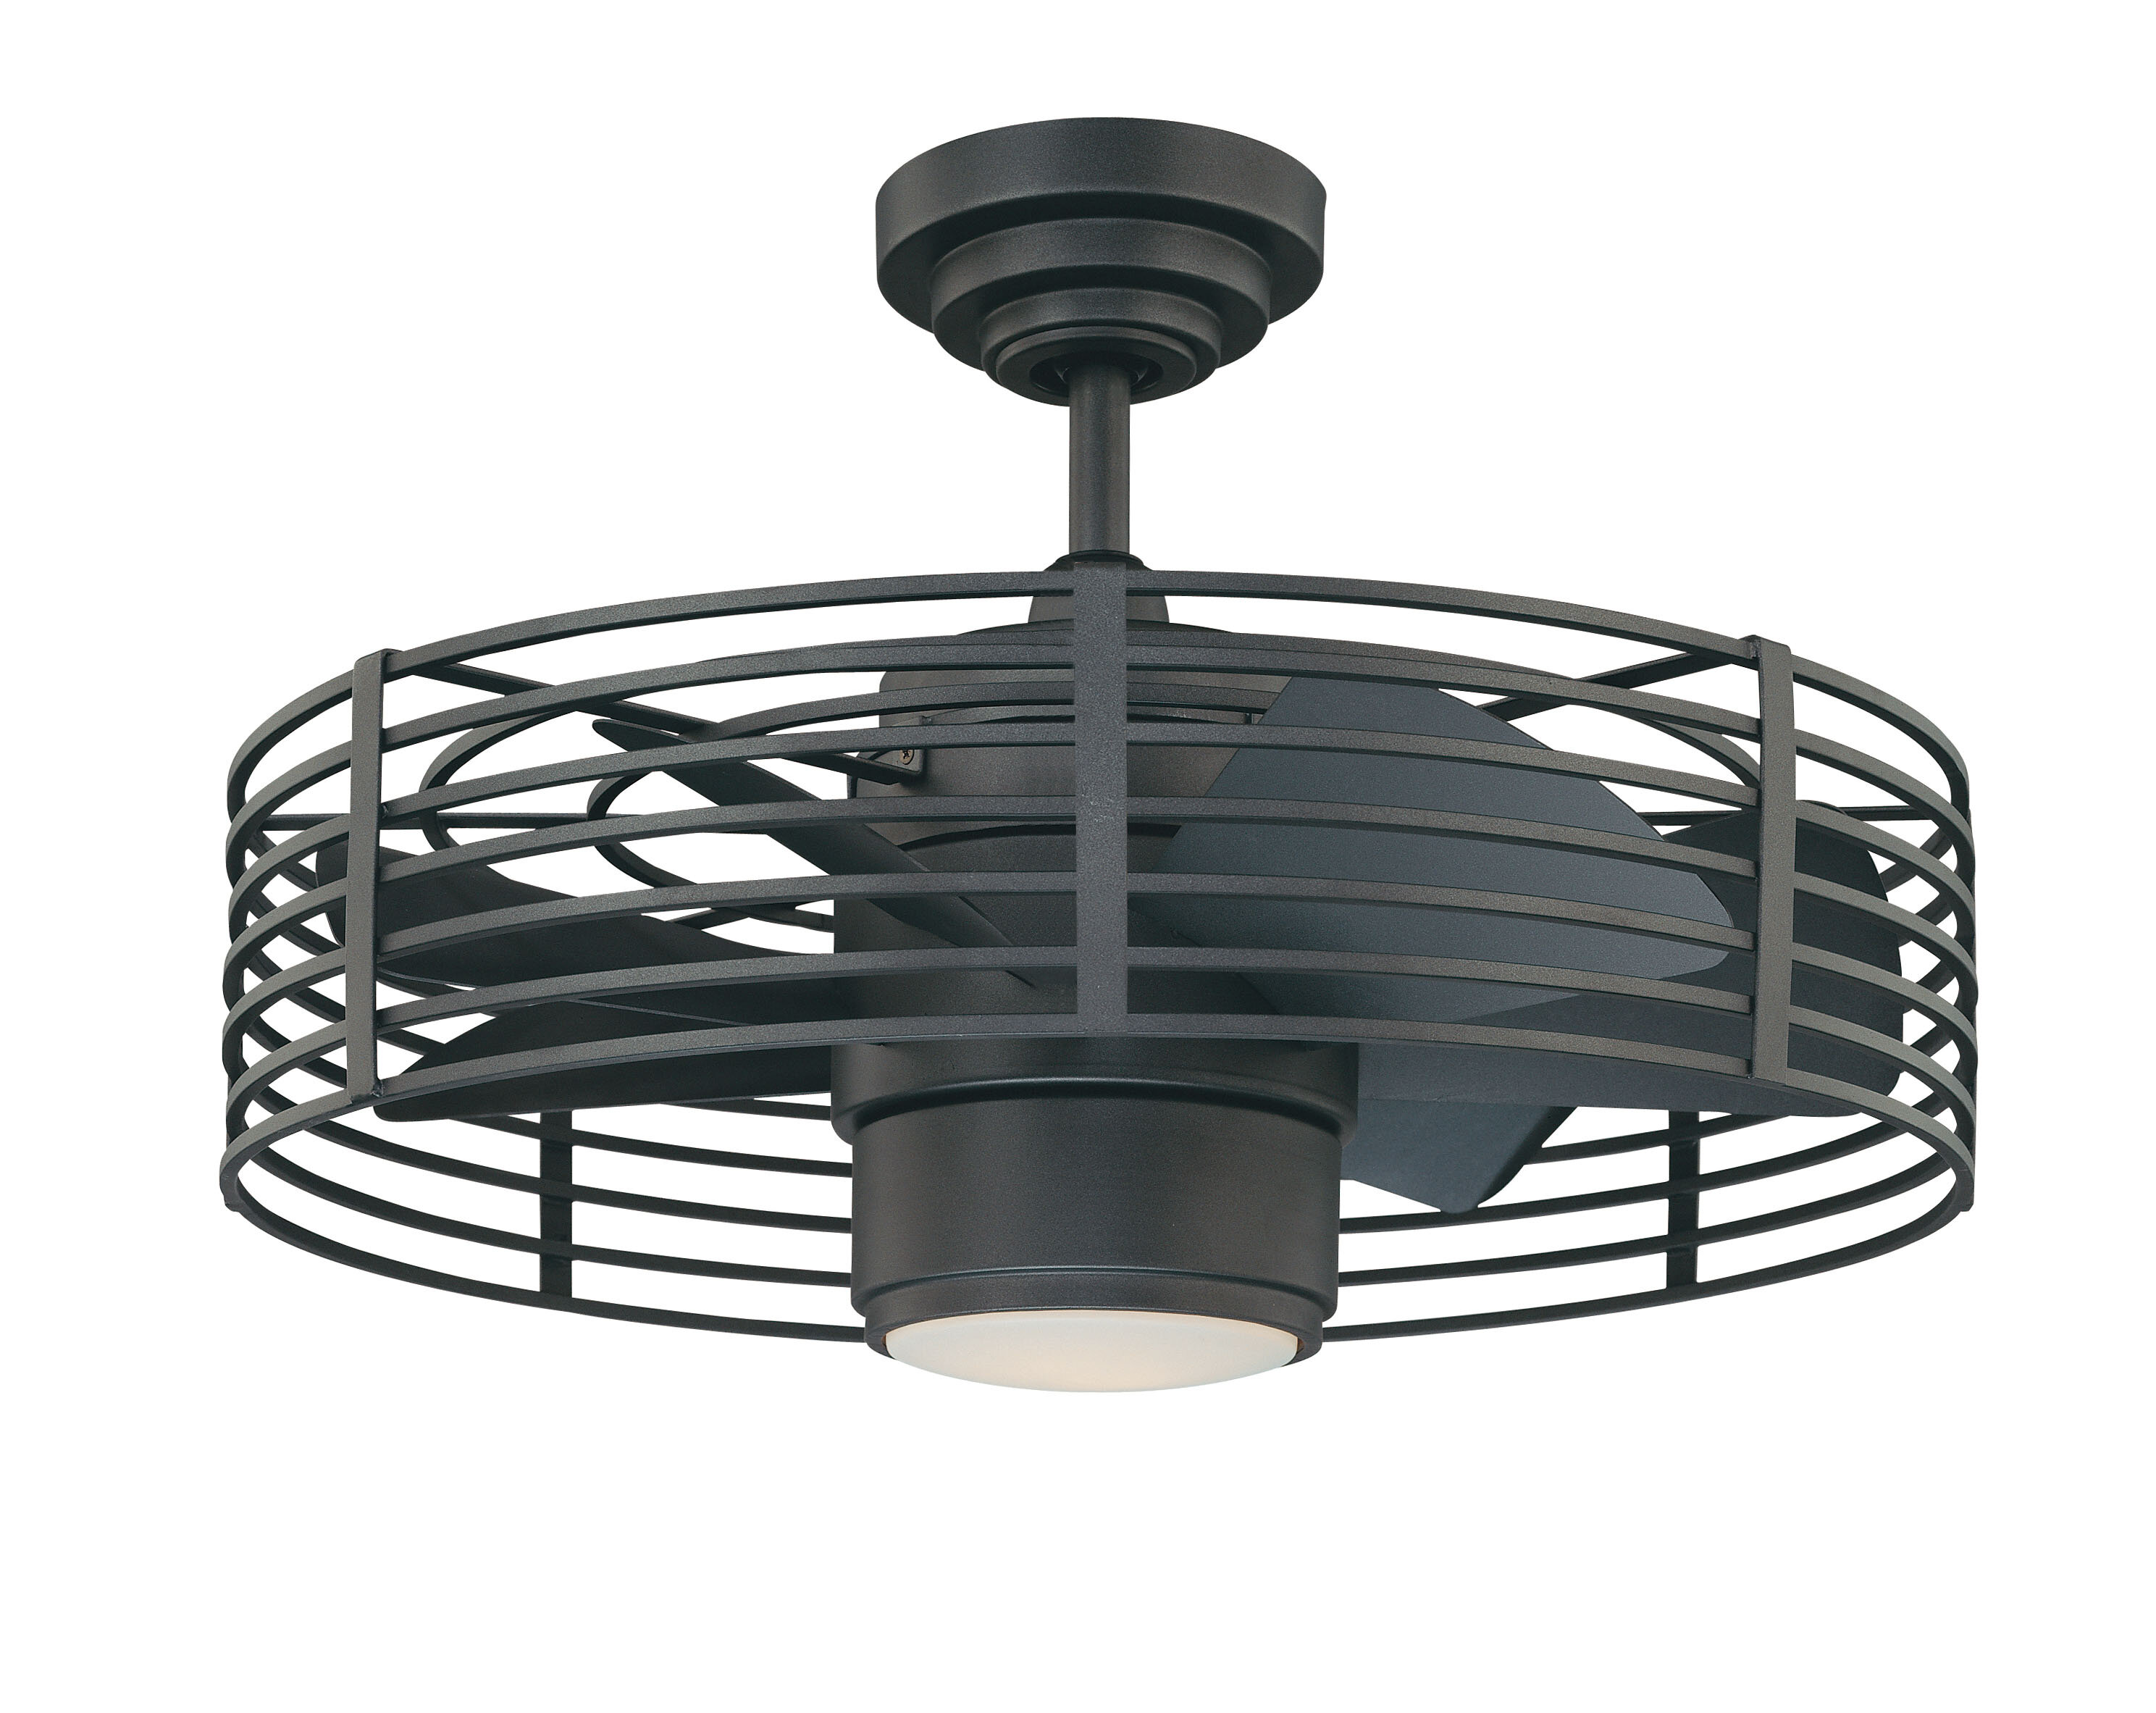 Trent Austin Design 23 Glasgow 7 Blade Ceiling Fan With Wall Remote